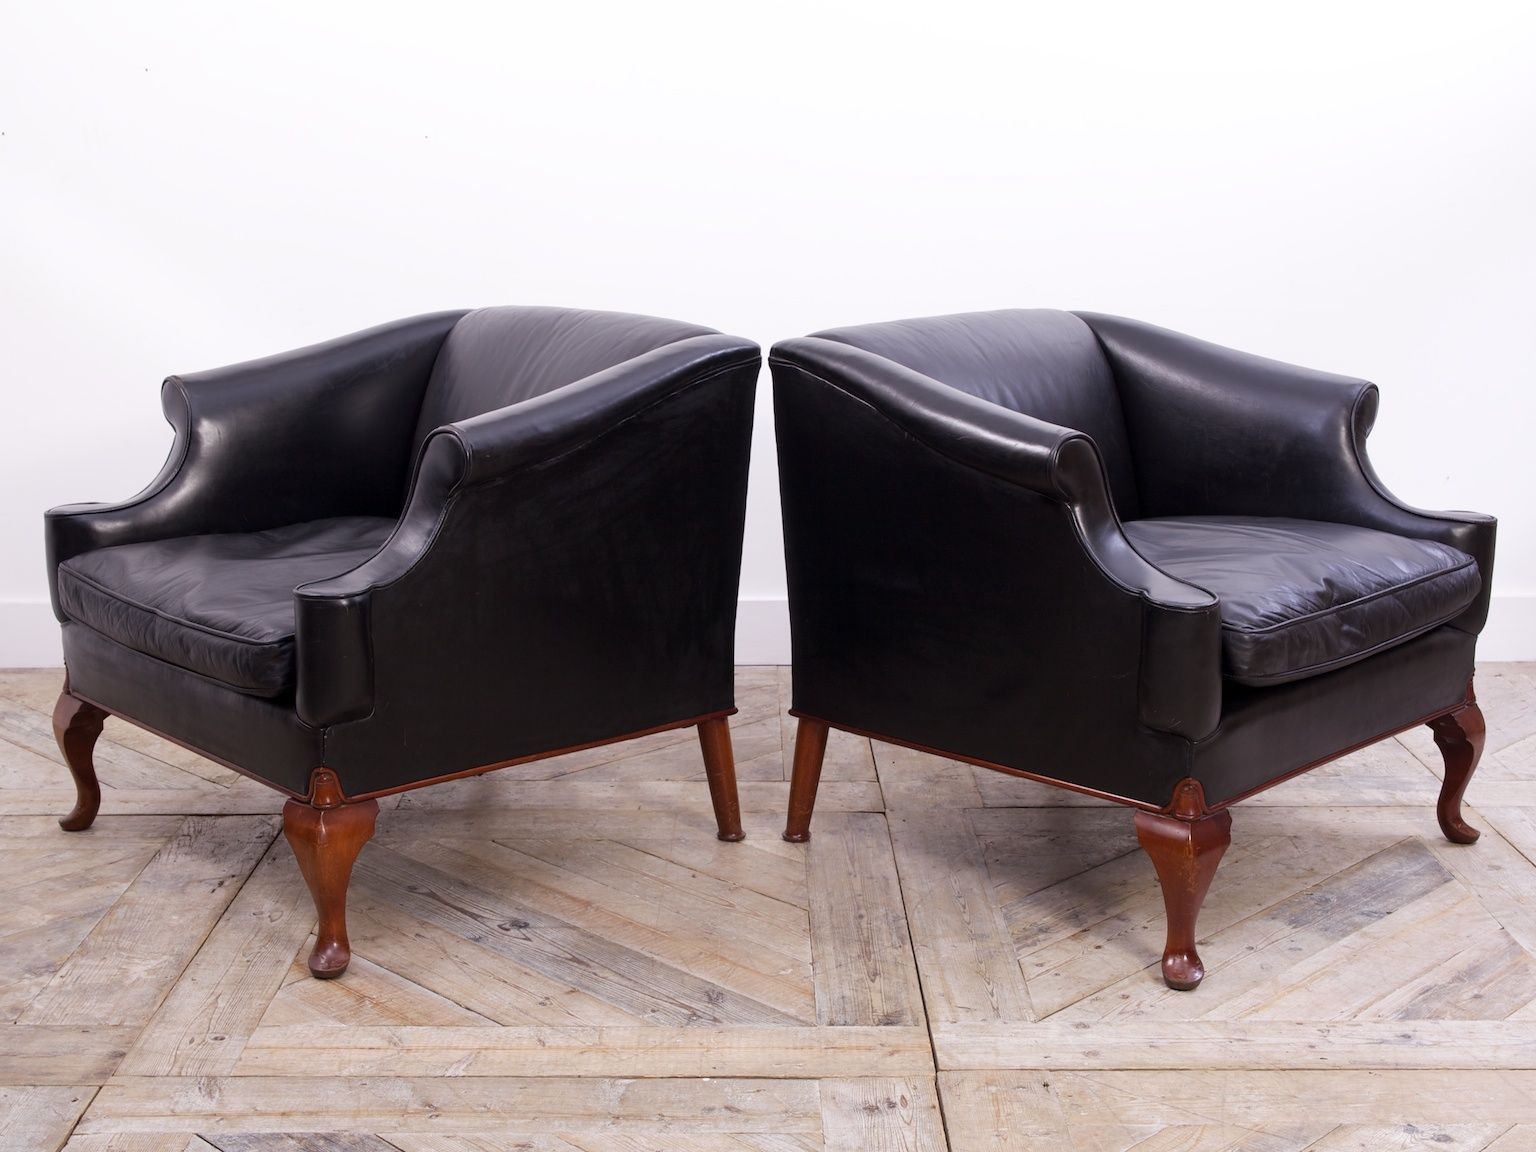 Antique black leather chairs - Vintage Black Leather Armchairs By Sir Edwin Lutyens Set Of 2